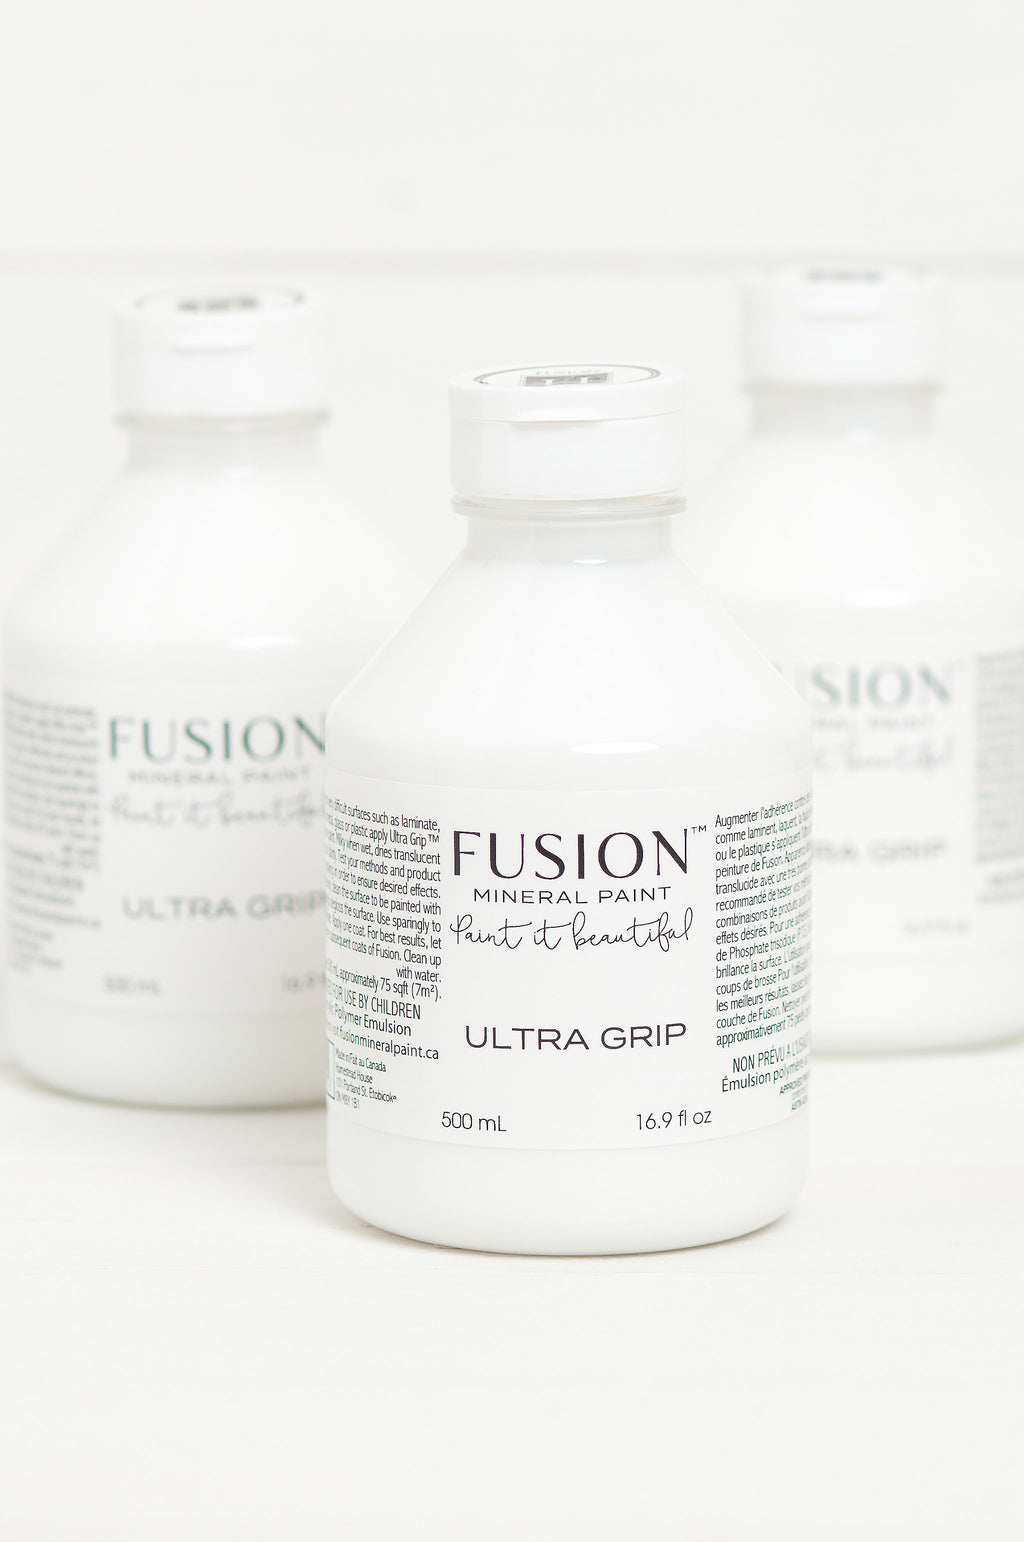 Ultra Grip - Fusion Mineral Paint